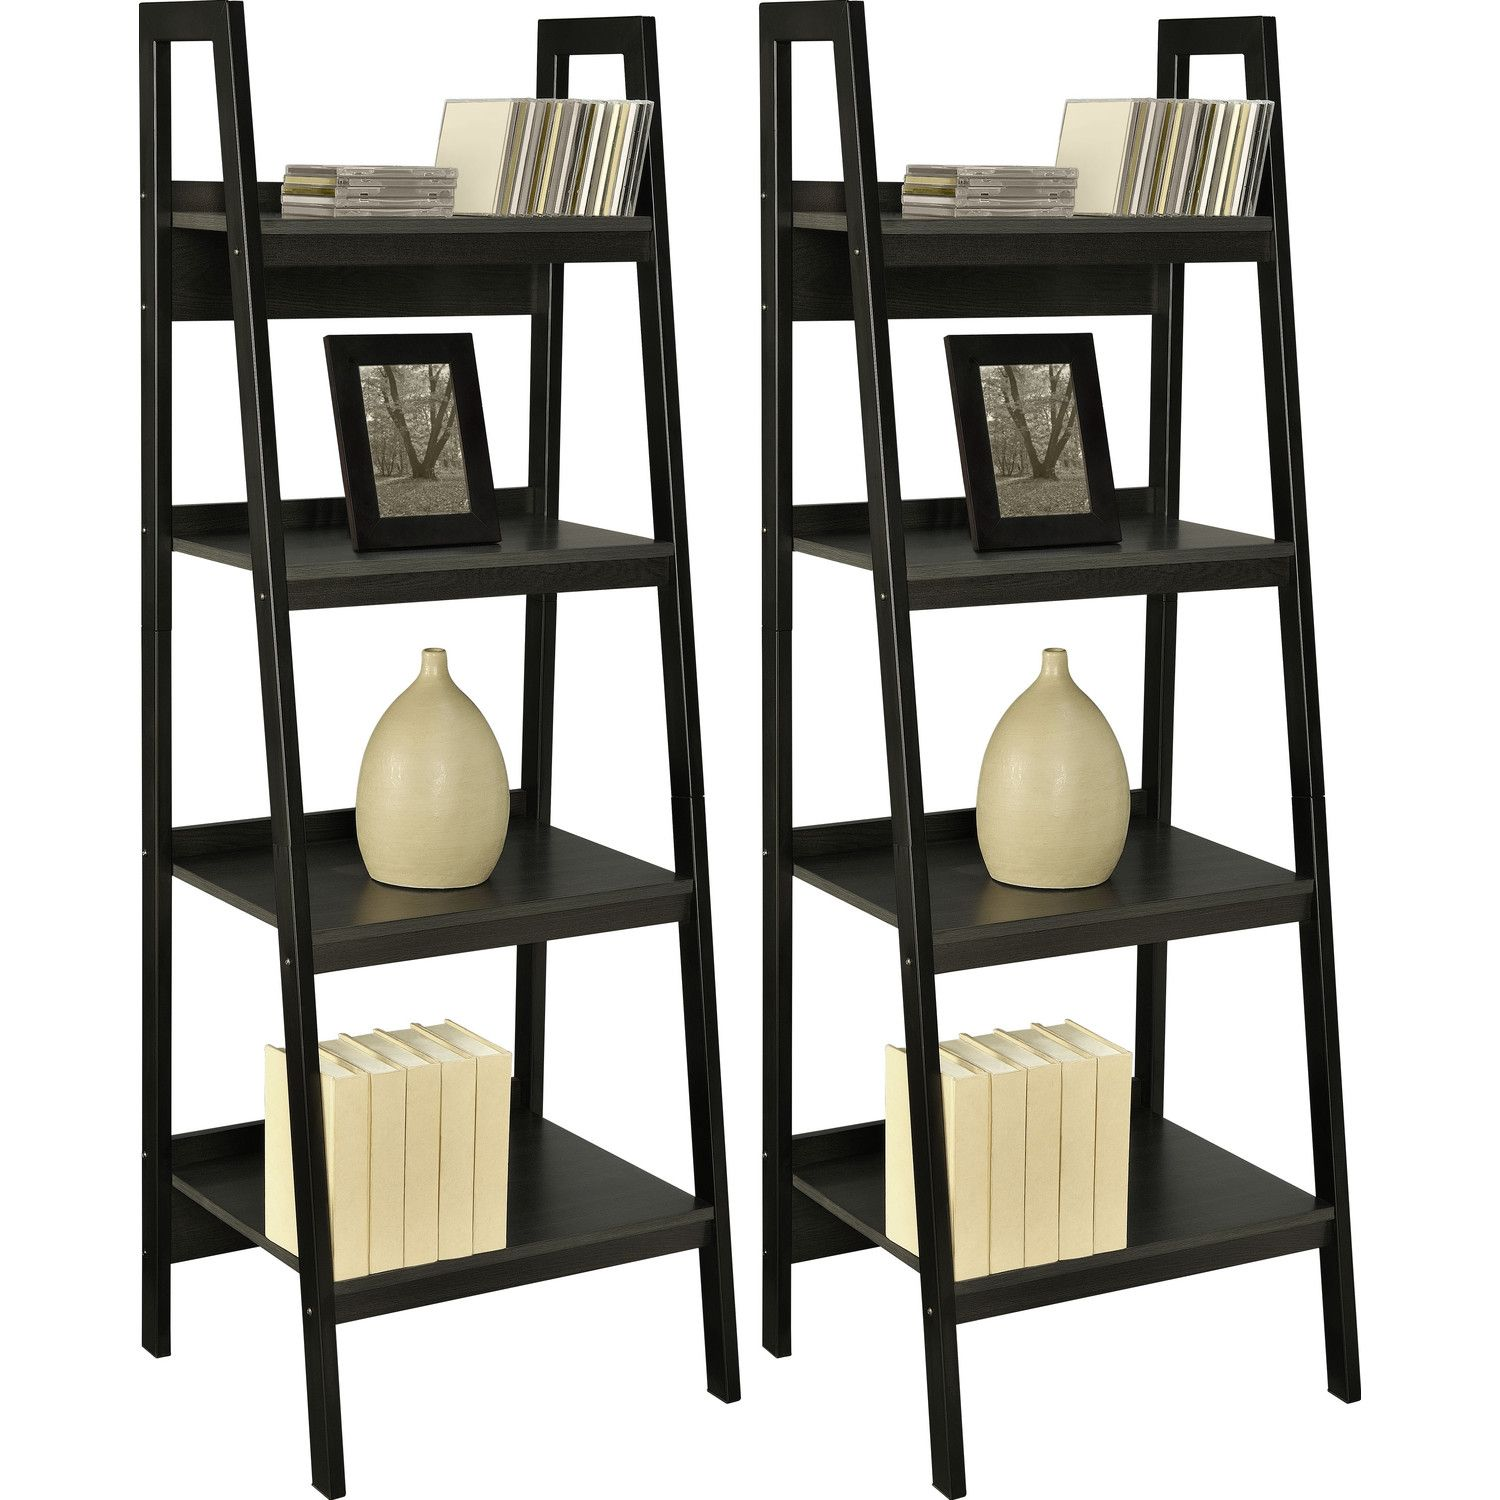 Altra furniture shelf ladder bookcase bundle trying to make my